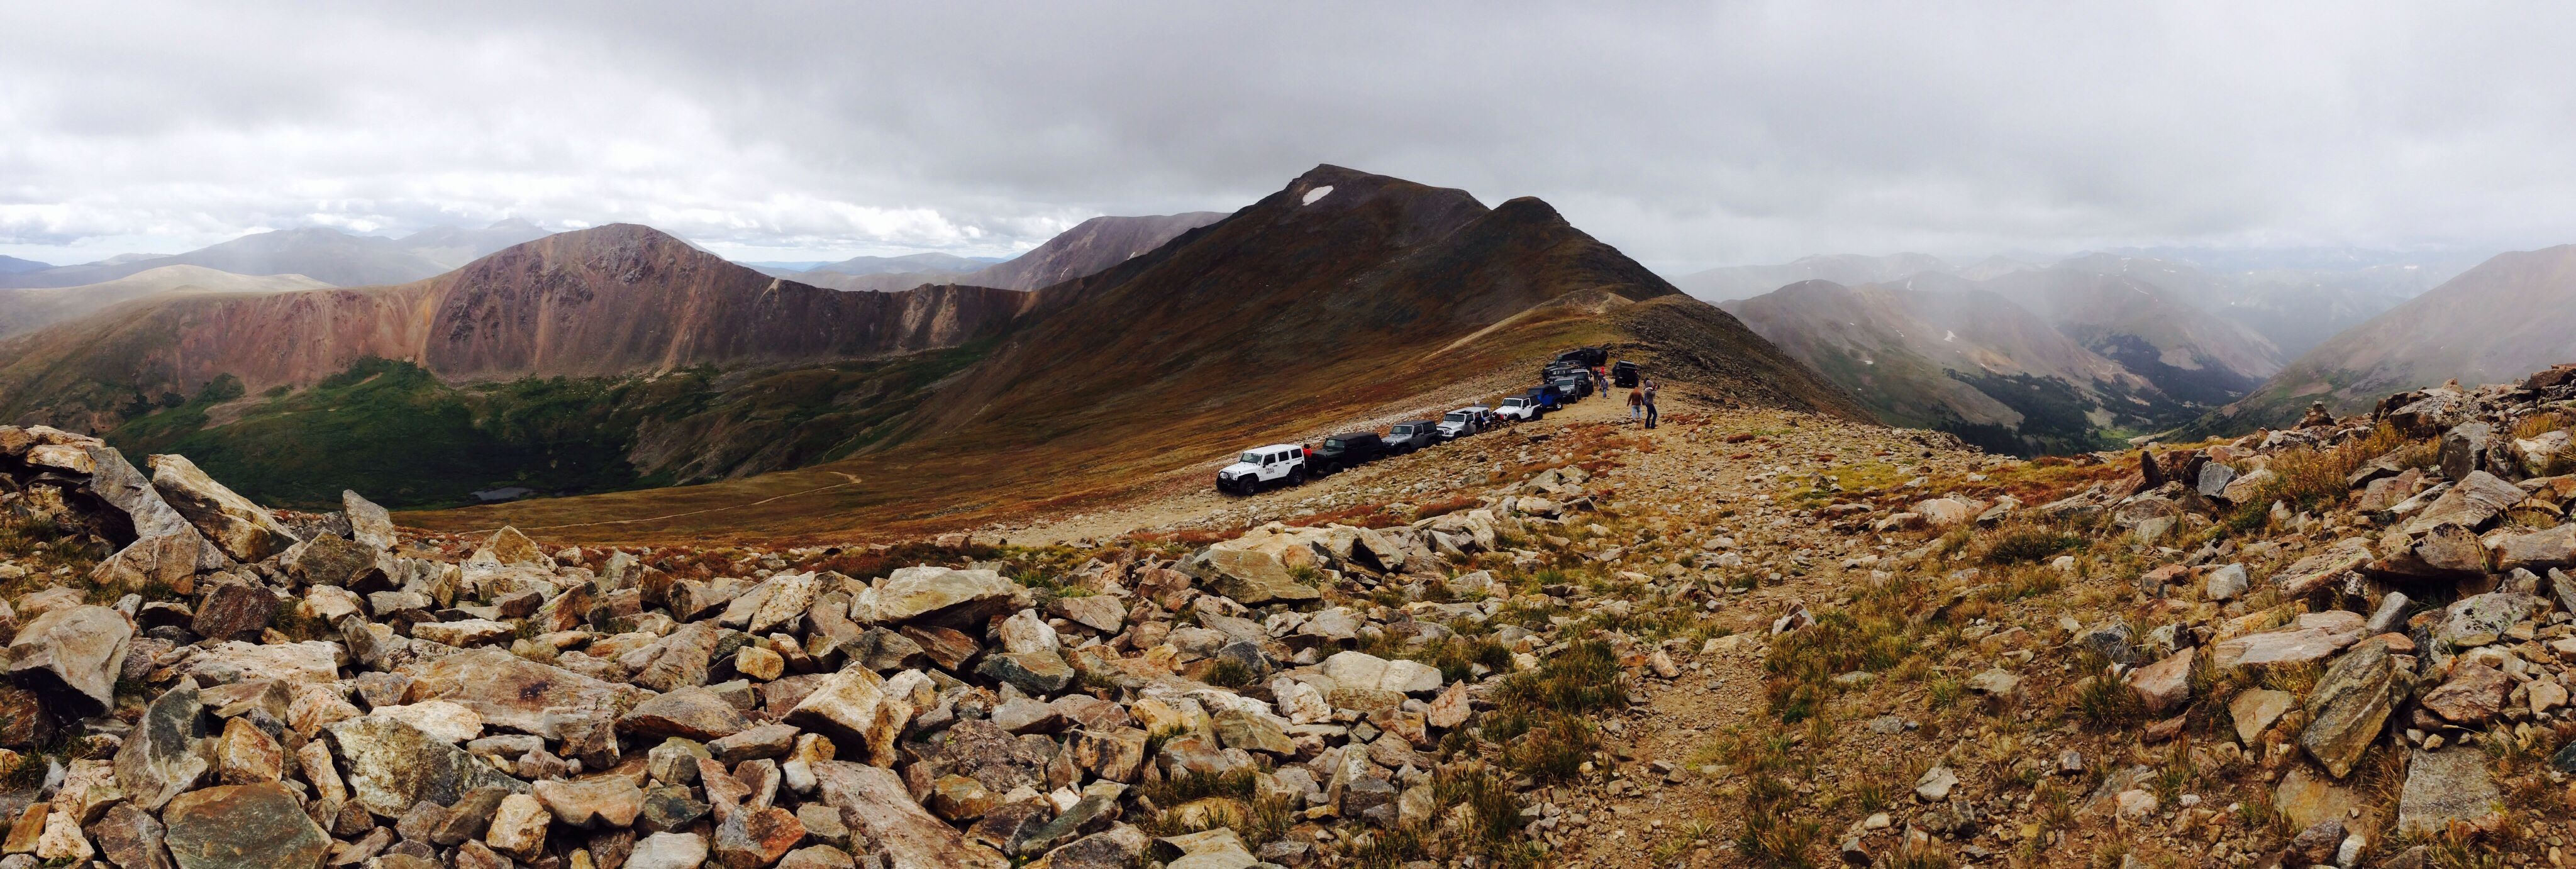 Greetings from 13,100 ft.   Trail Jeepers group run up Argentine Pass